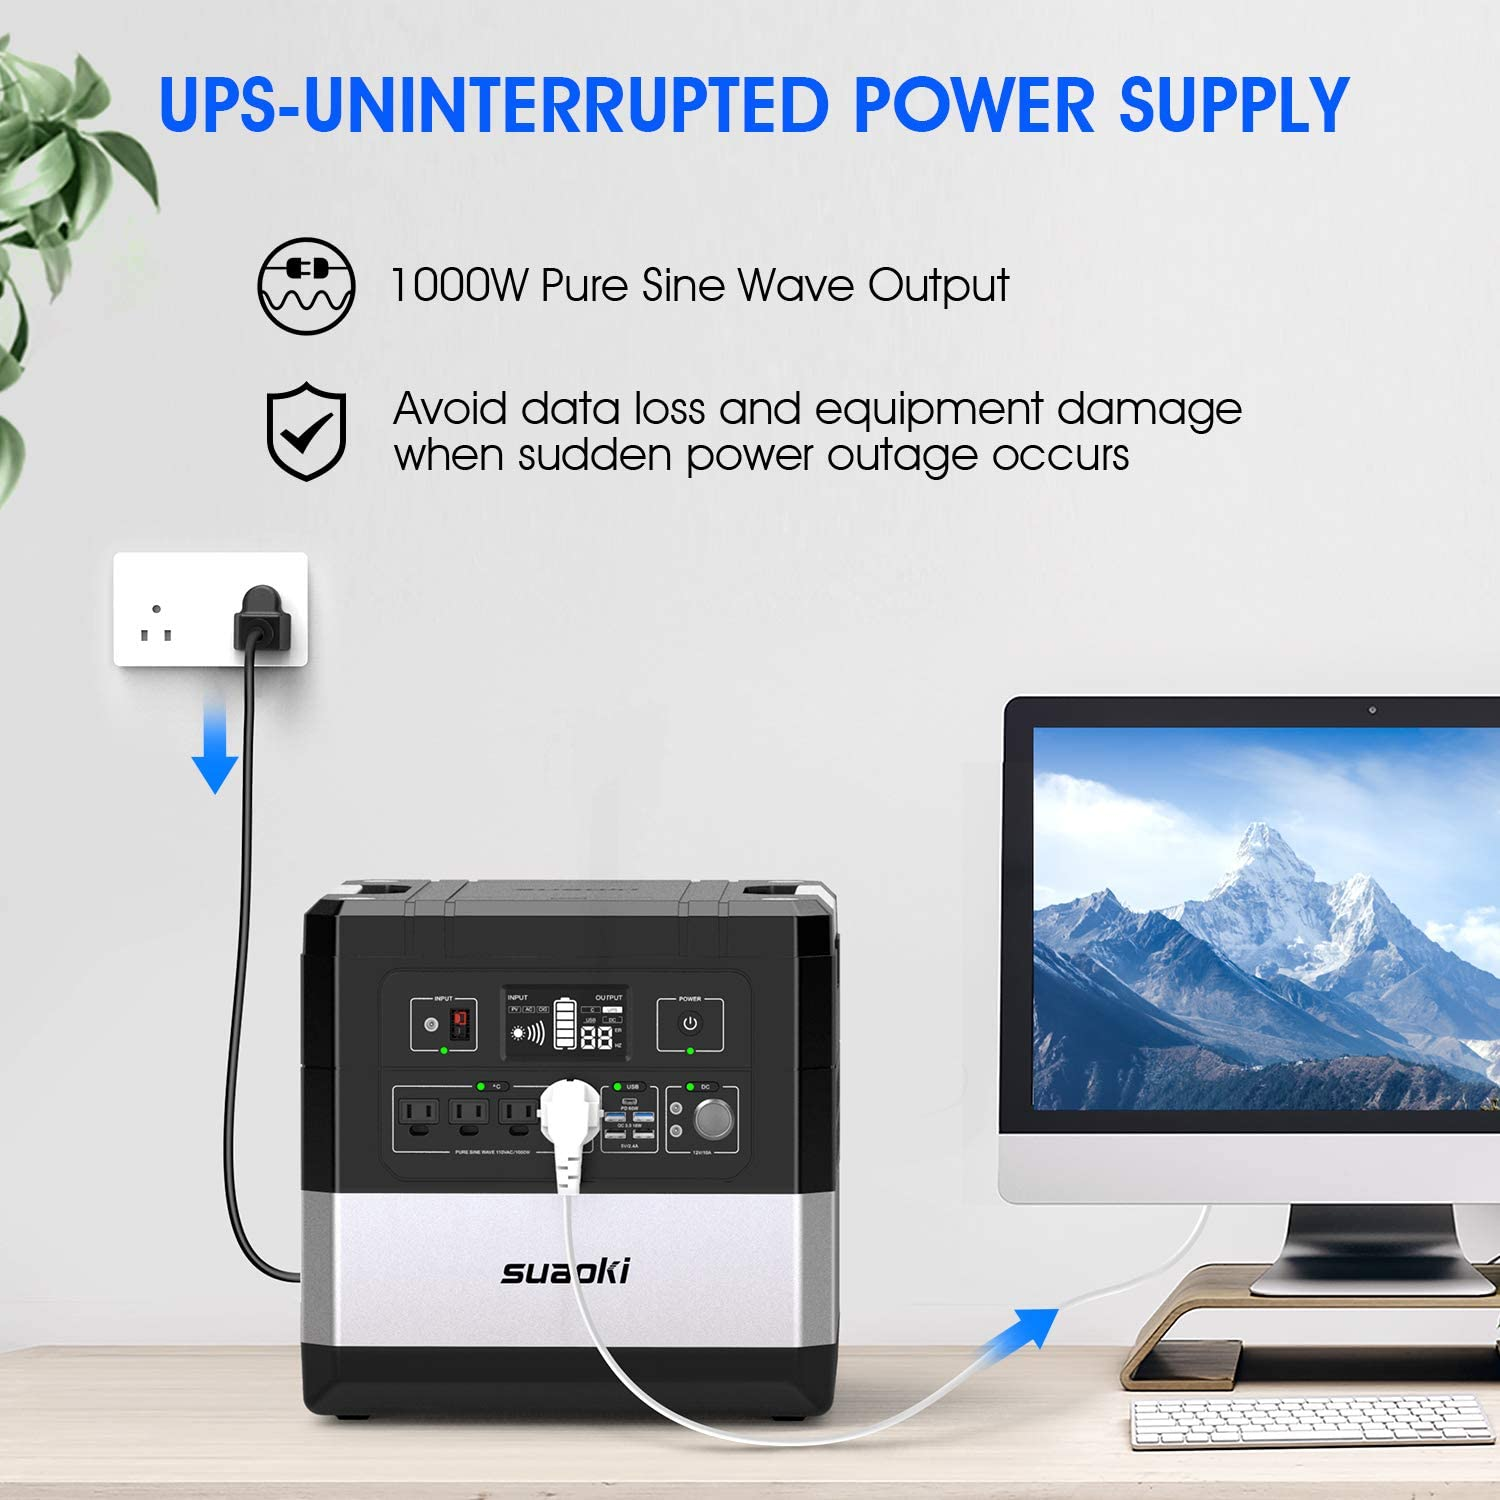 UPS Power Station, SUAOKI G1000 Portable Power Supply 1183Wh Silent Gas Free Generator LiFePO4 Battery Pack with 1000W 2000W Surge AC Inverter, 60W Power Delivery USB C for Camping CPAP Power Outage